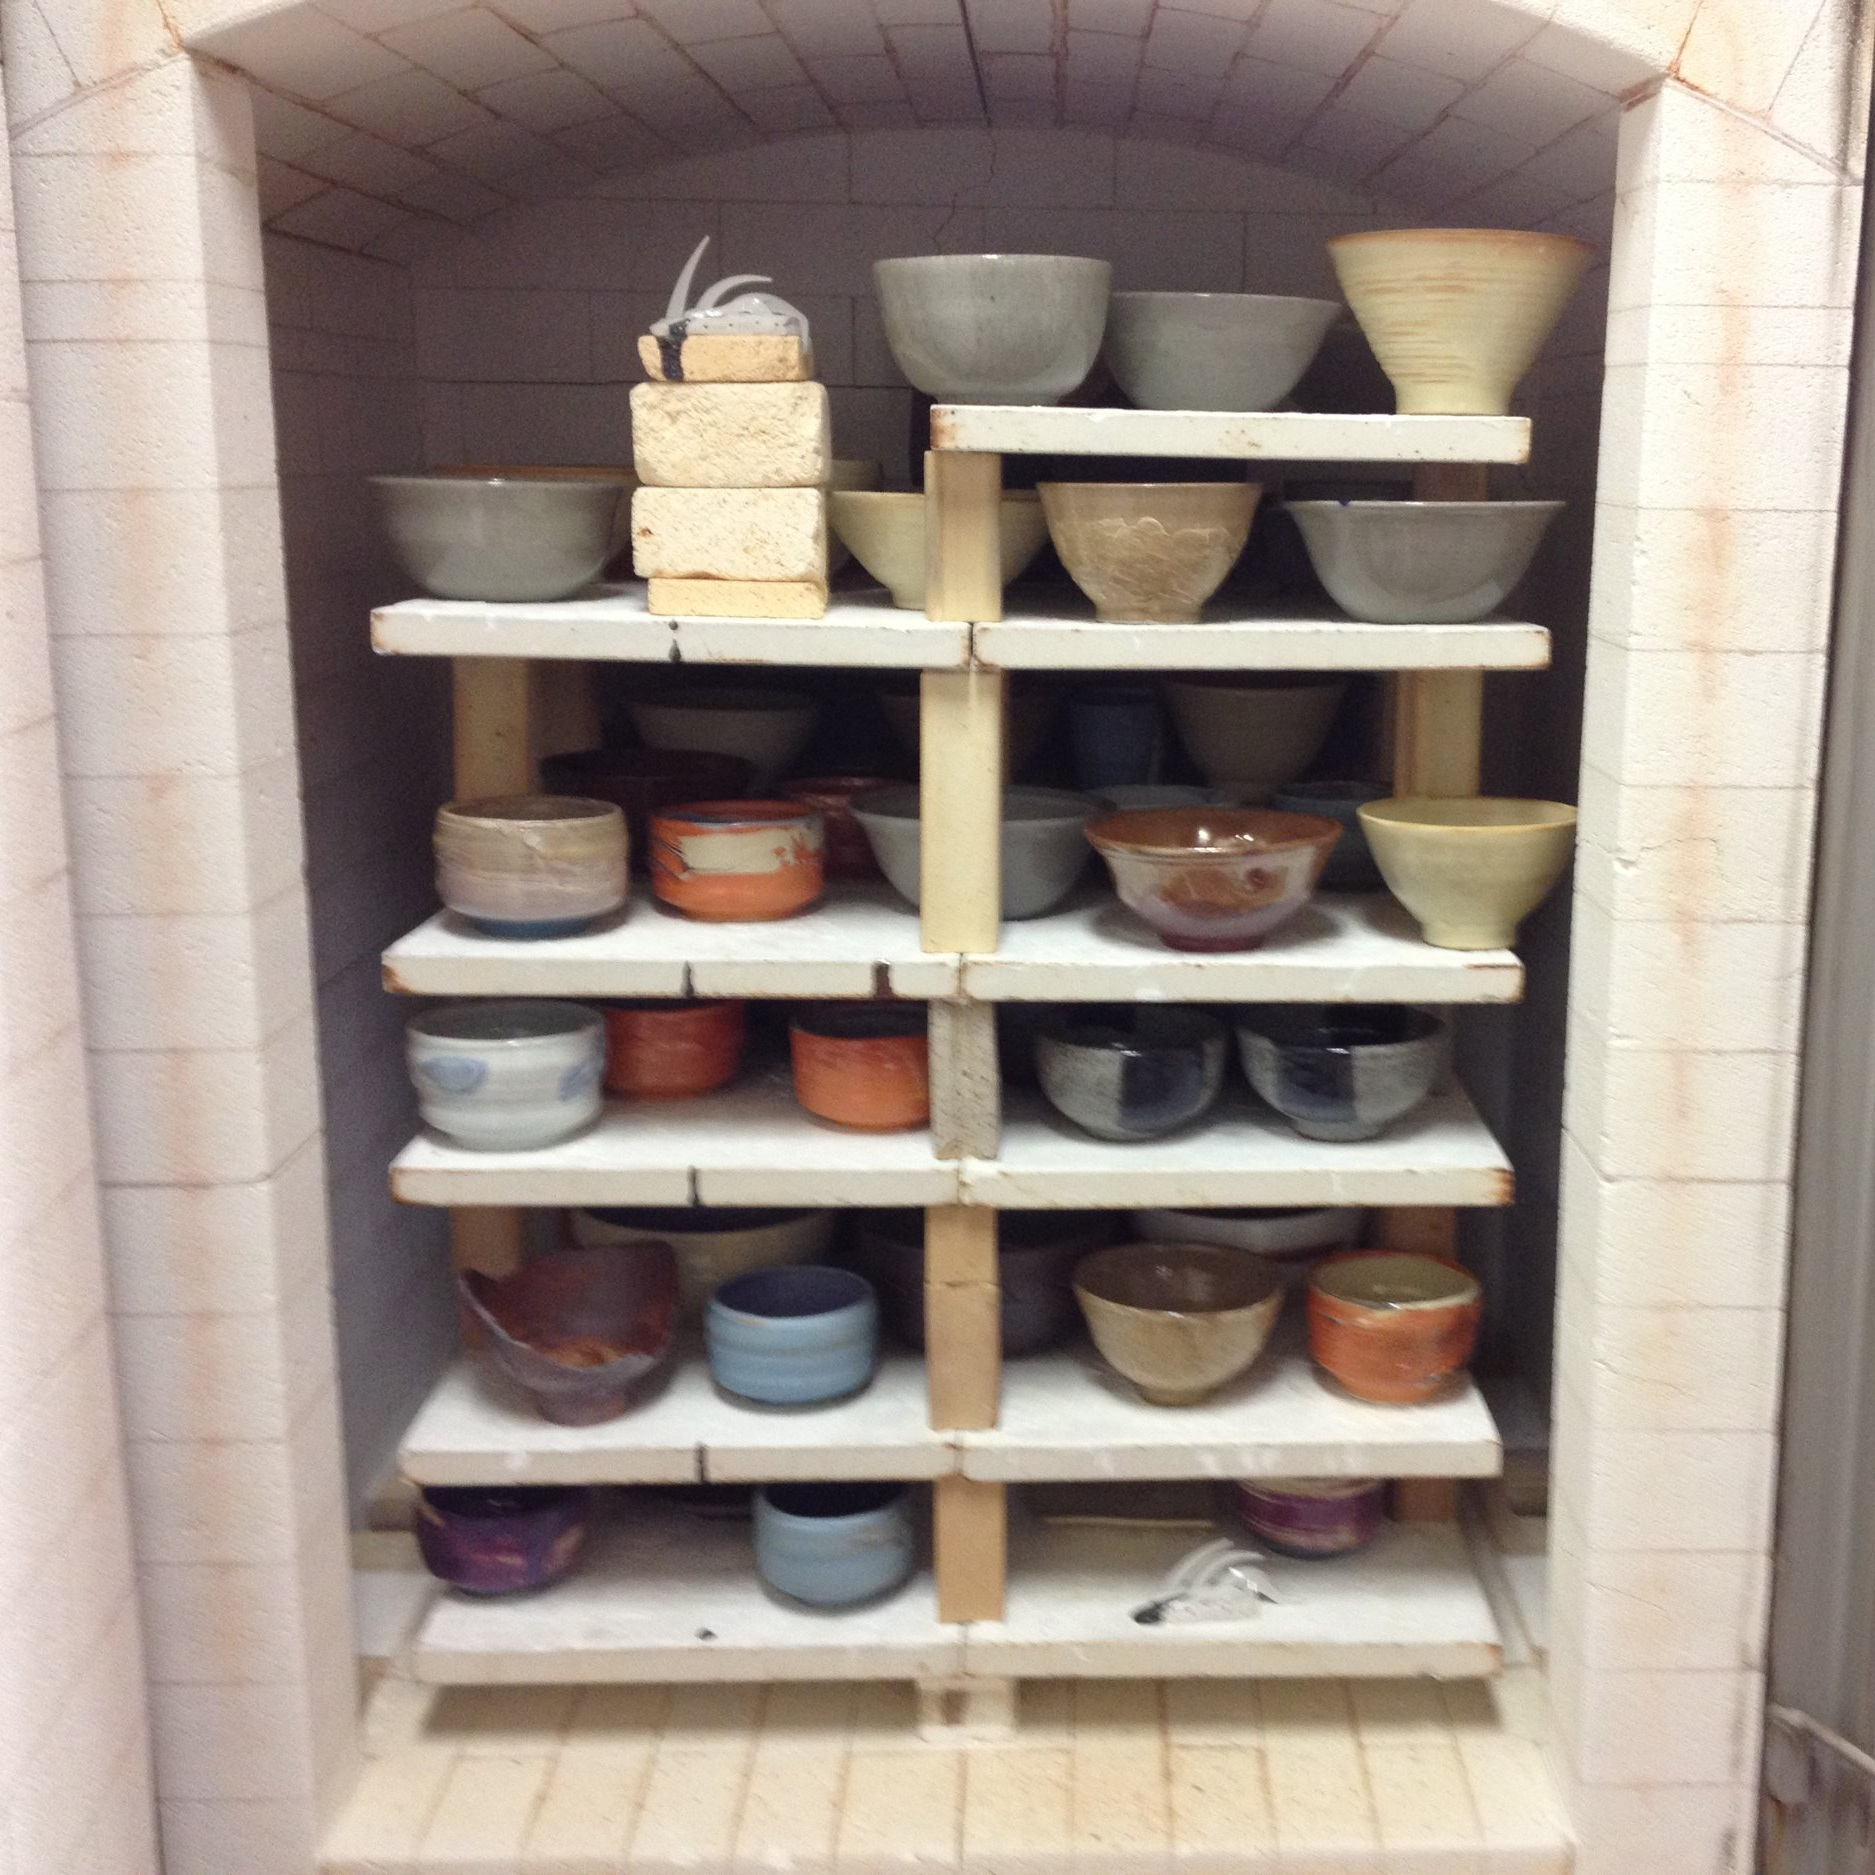 KILN-2015-10-23 10.39.21 finish copy.jpg